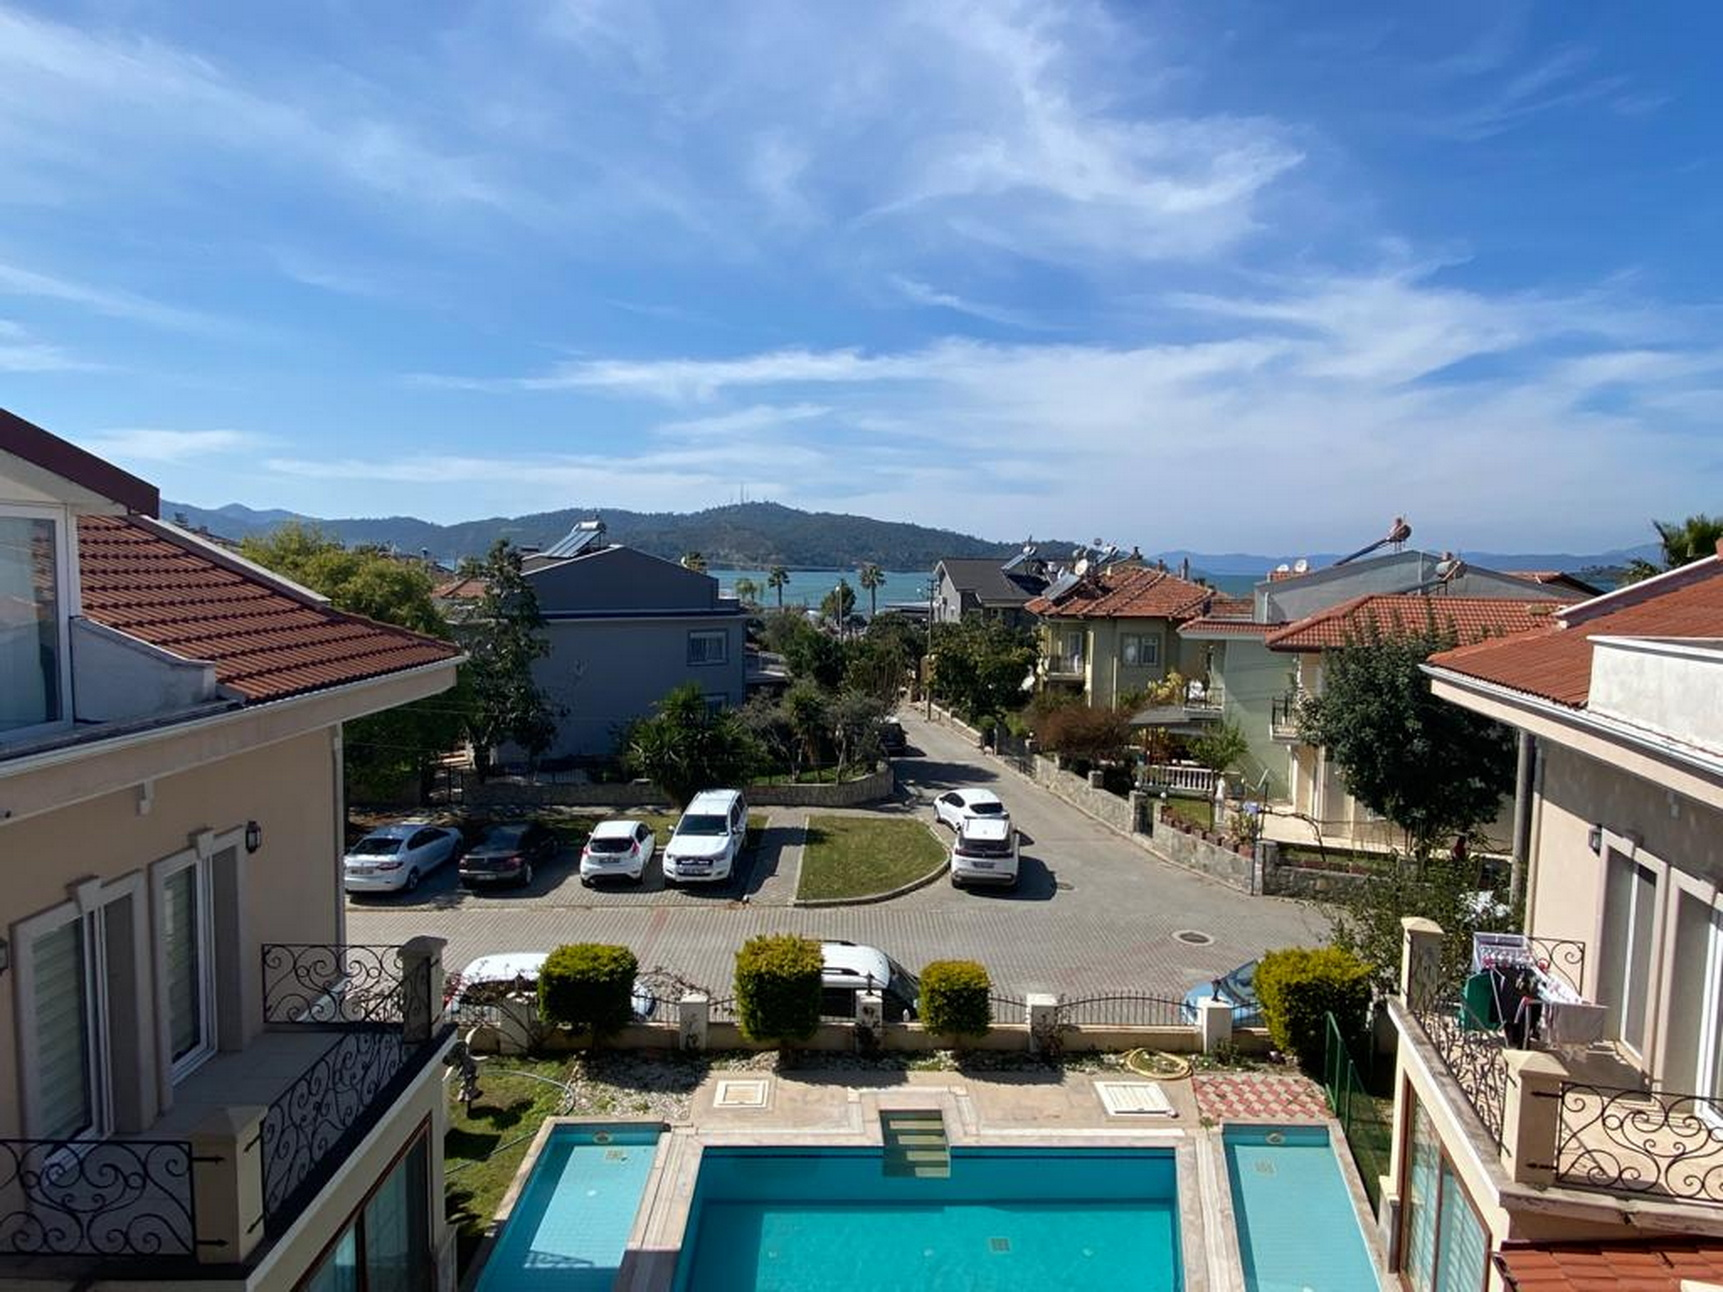 Lovely Modern 4 Bed Villa with Sea Views in a Quiet Area By the Seaside